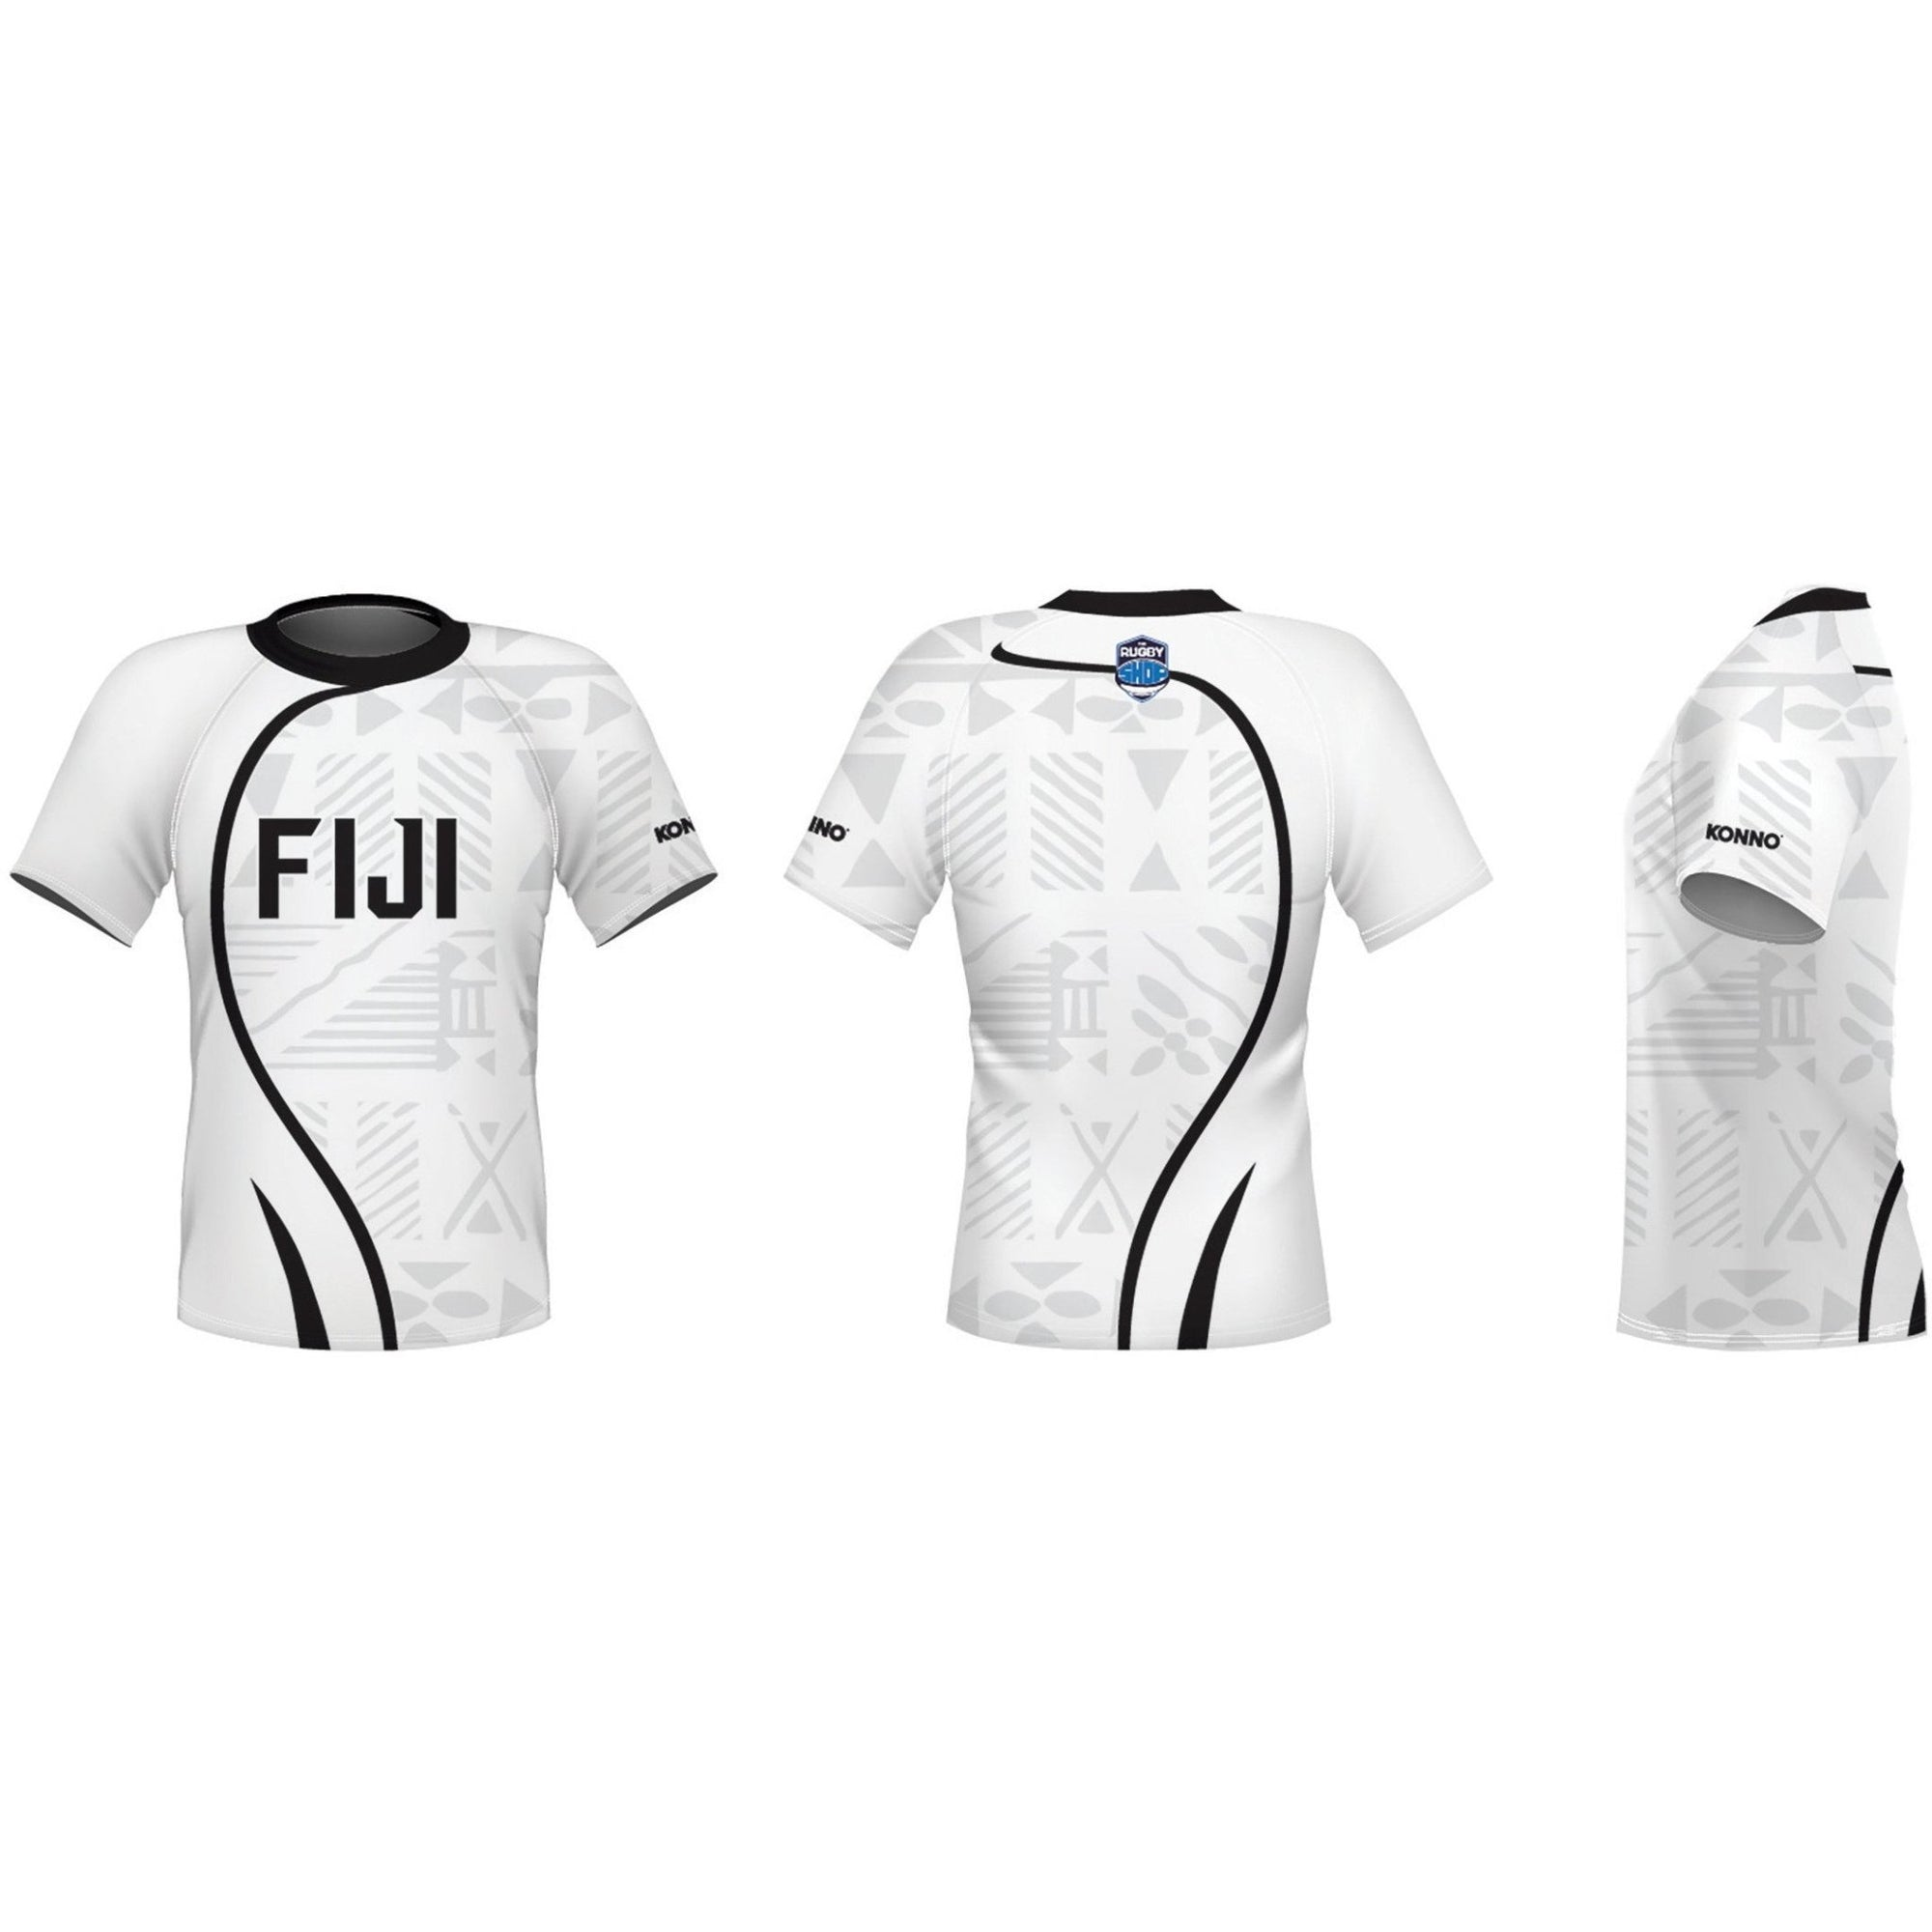 Konno International Supporter Tee - Fiji - www.therugbyshop.com